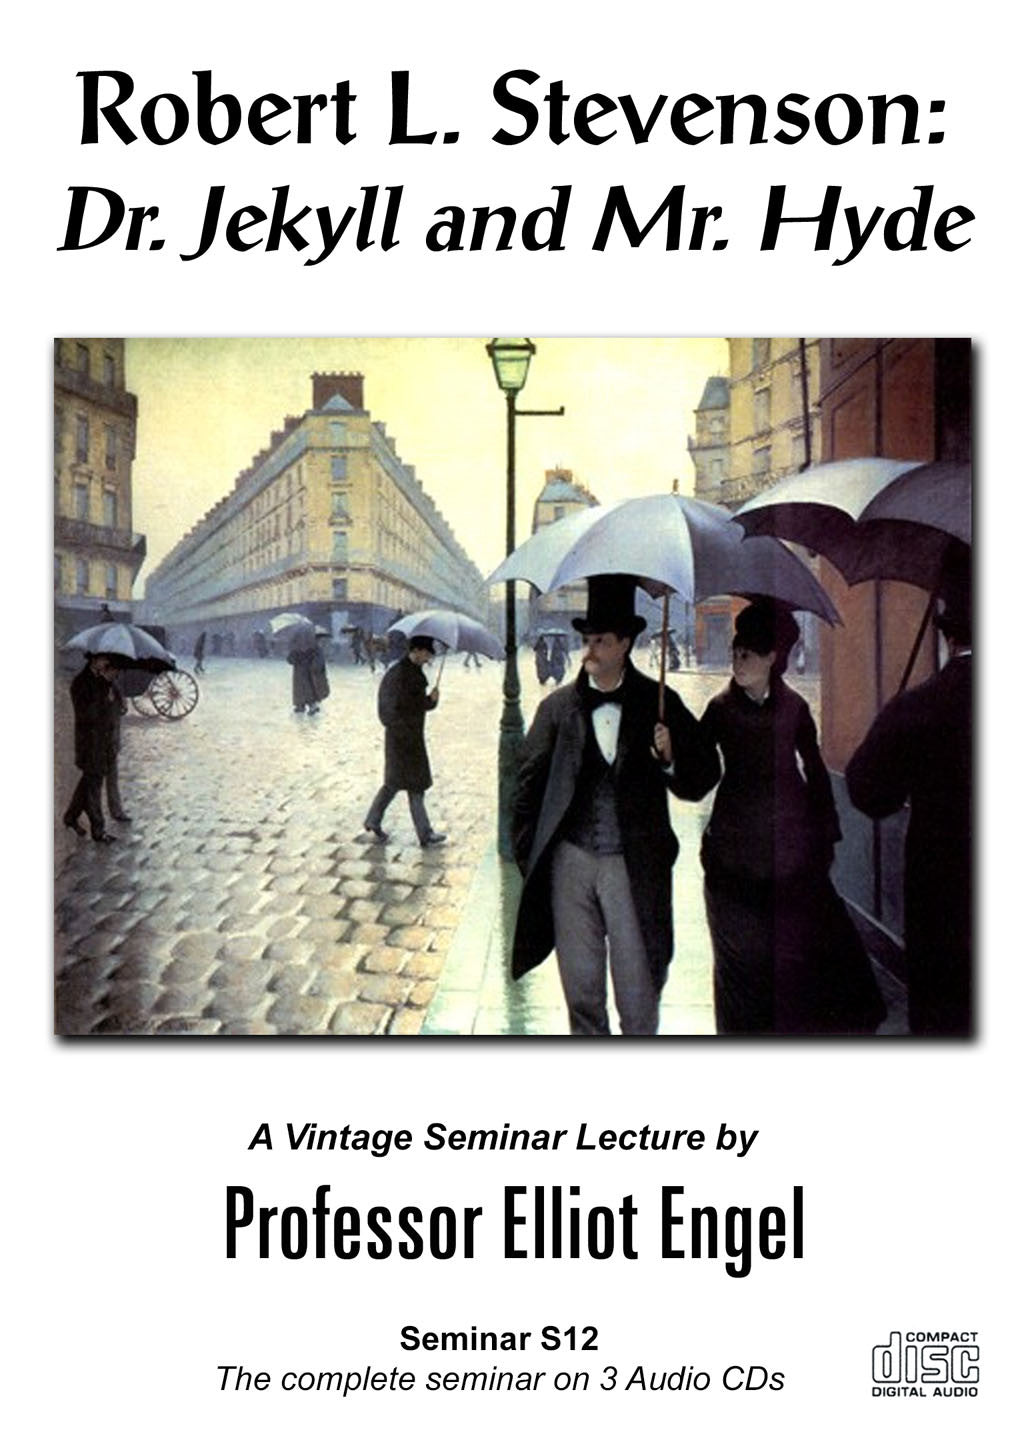 Seminar 12 Robert L. Stevenson: Dr. Jekyll and Mr. Hyde